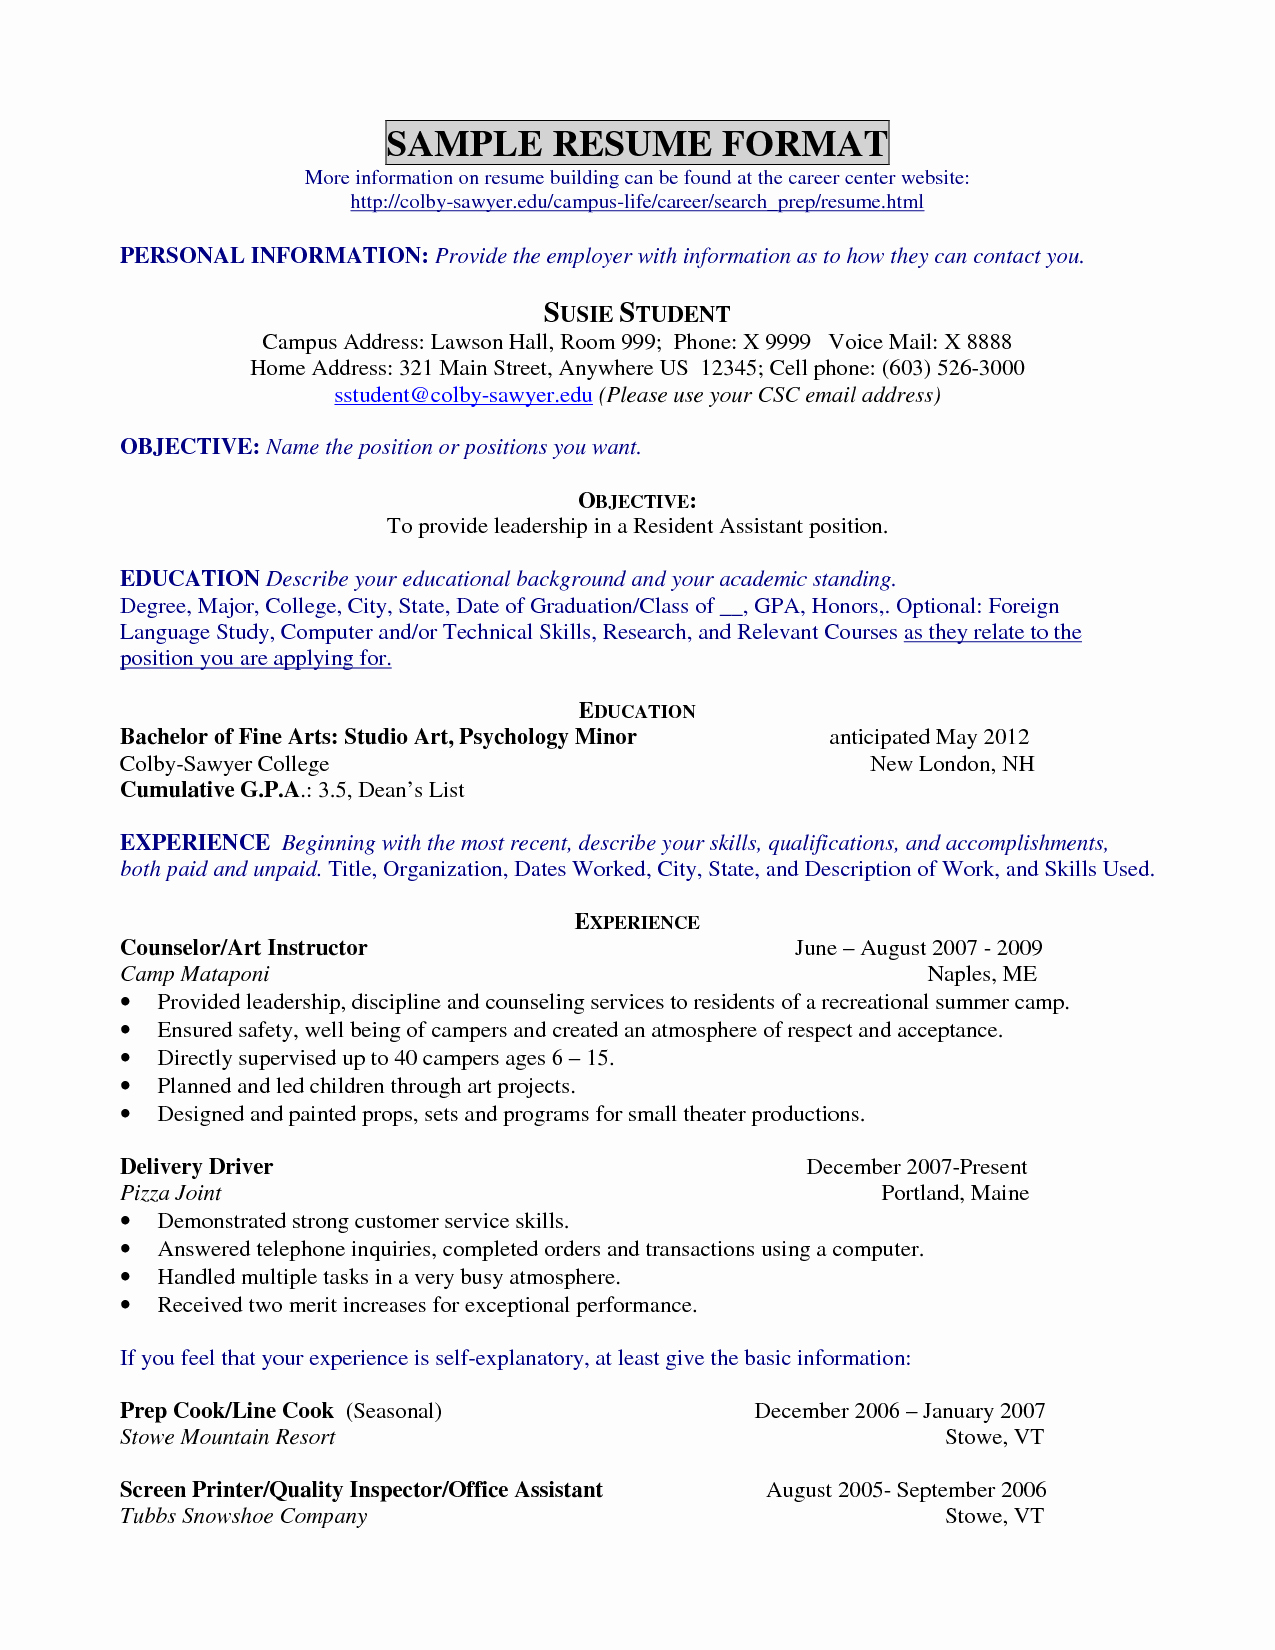 Cook Description for Resume Awesome Cook Prep Resume Resume Ideas